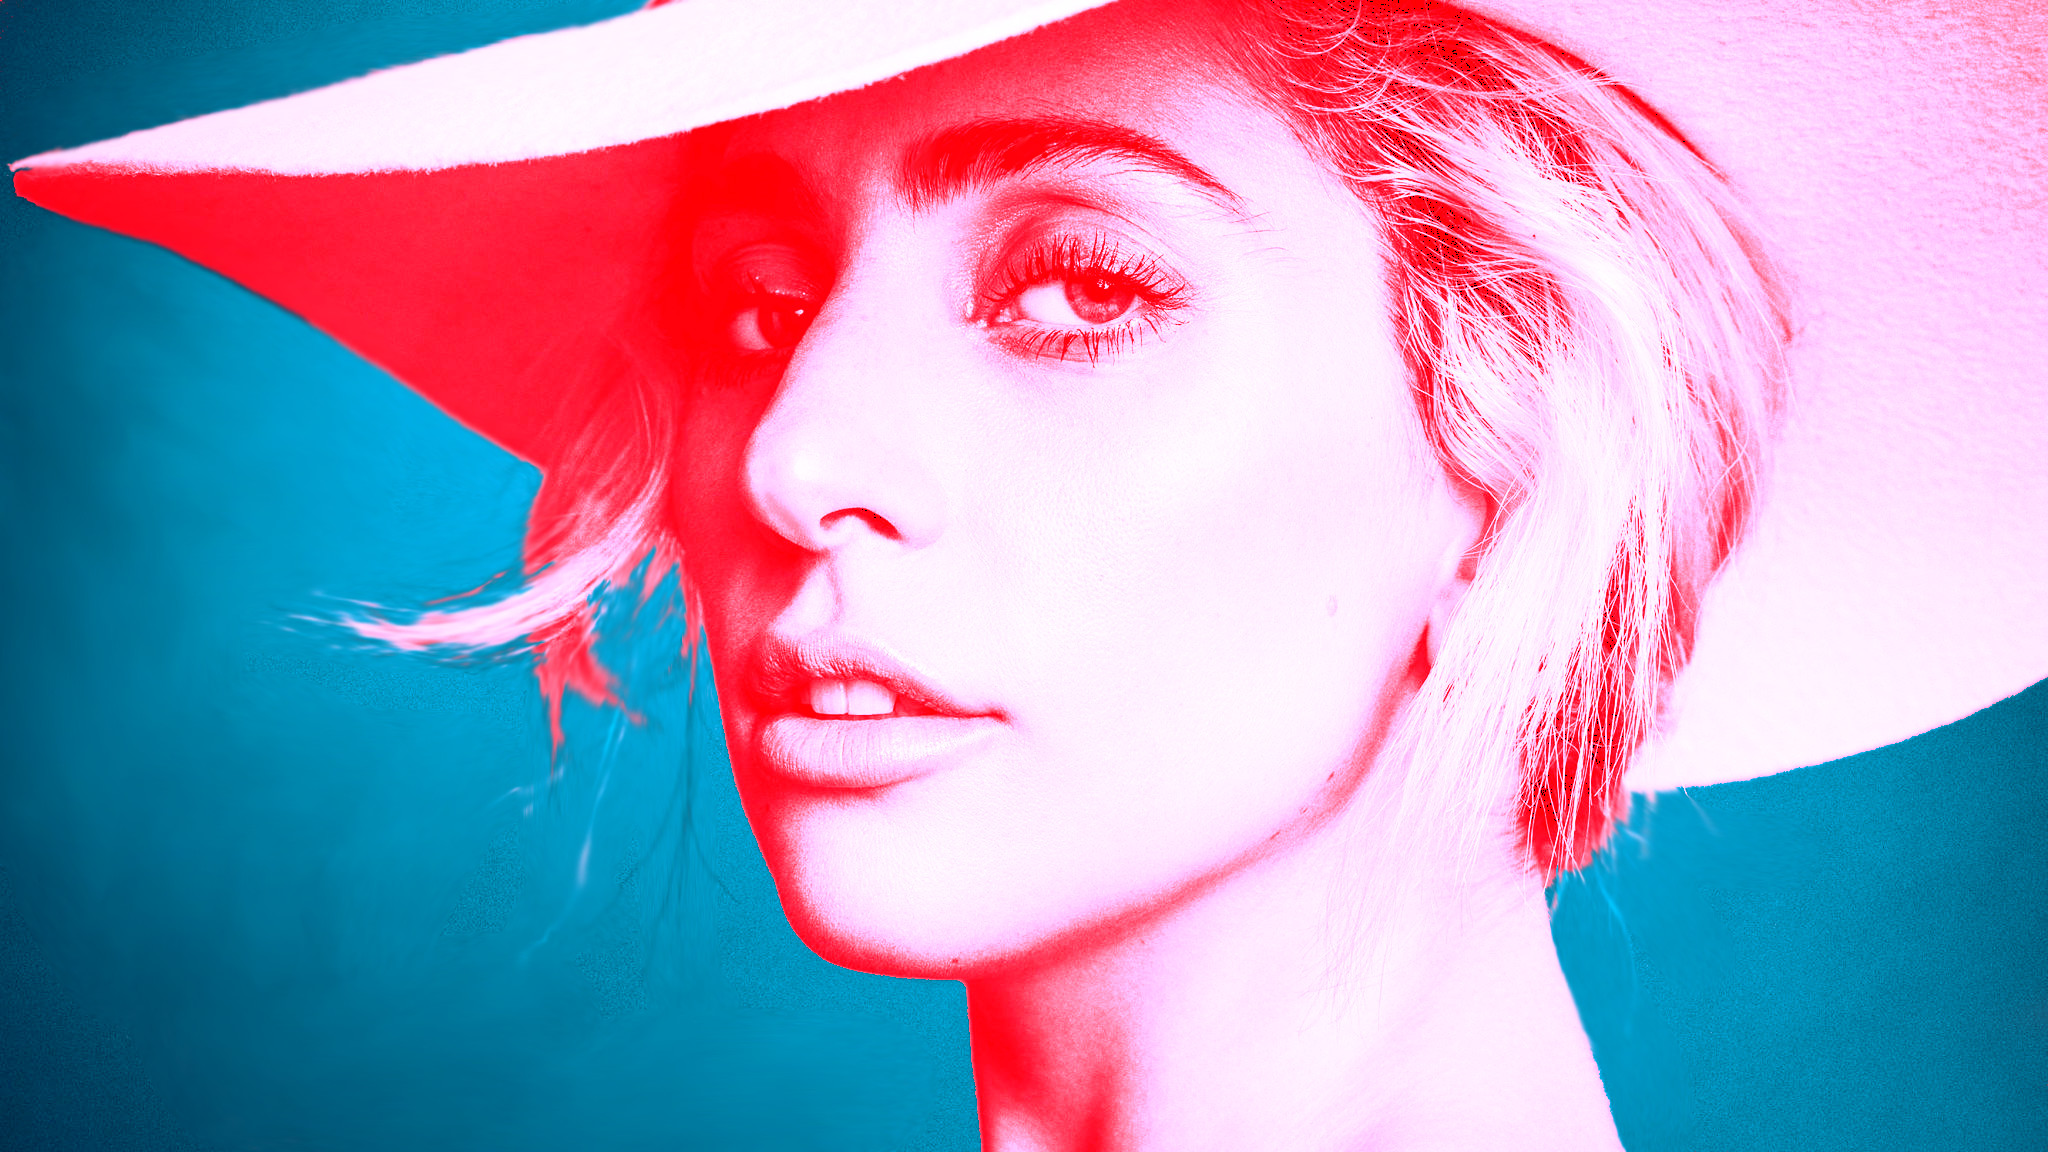 Lady Gaga Wallpapers 2017 85 Background Pictures